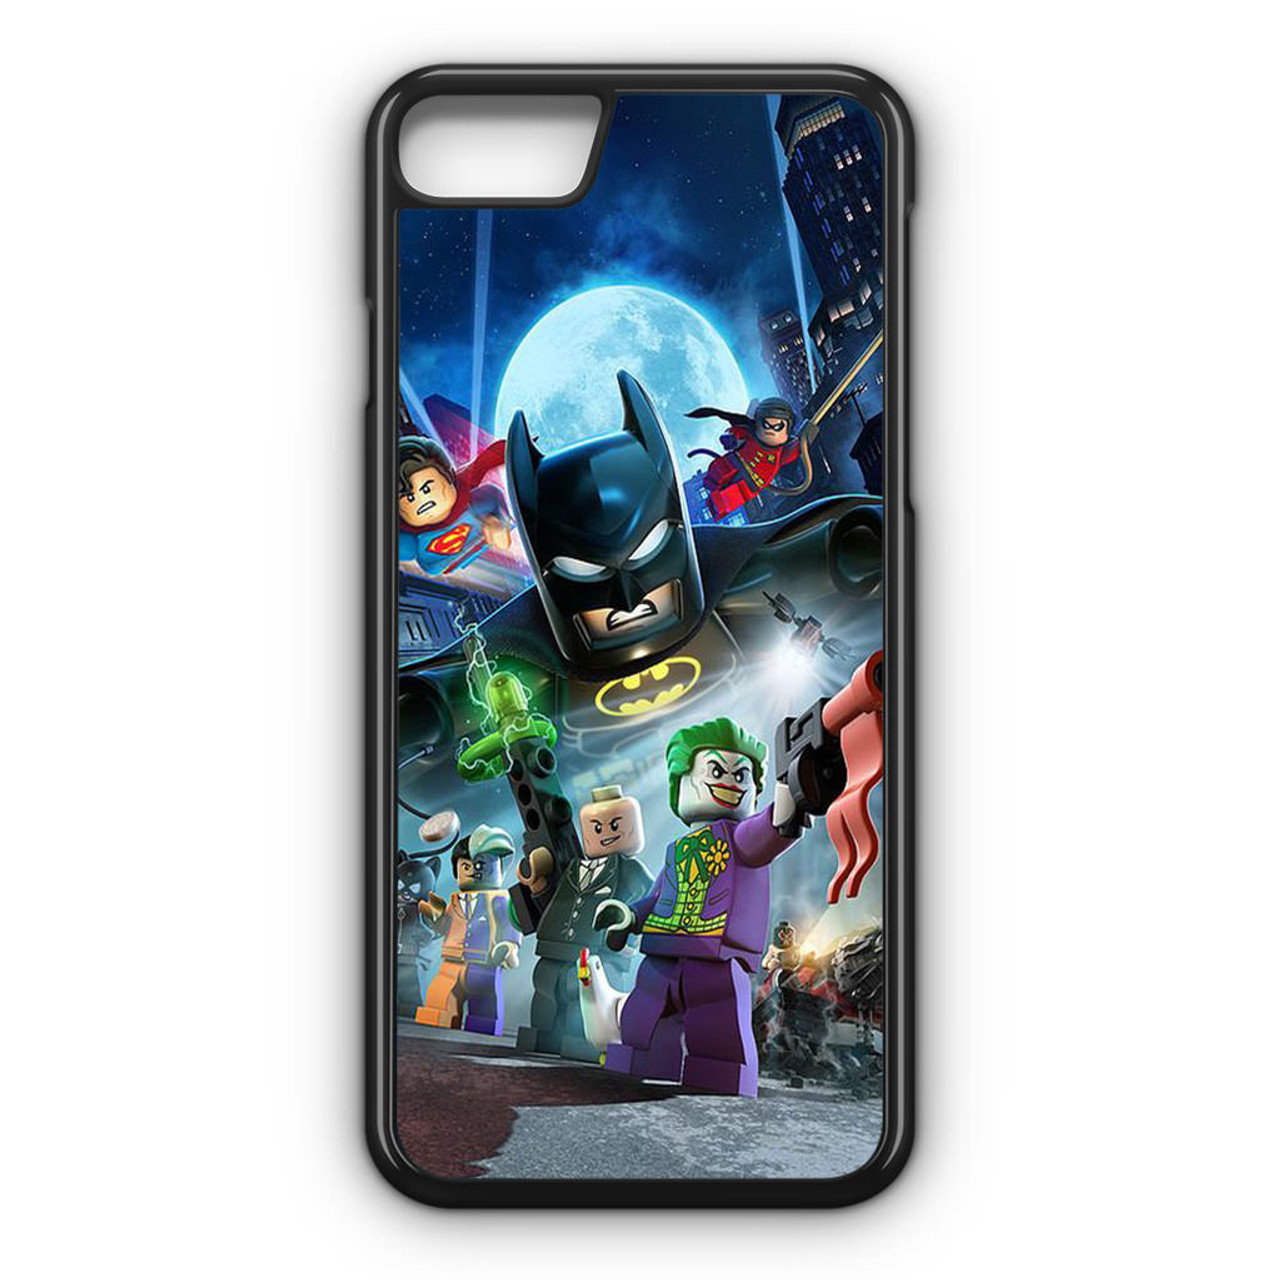 iphone 8 case lego